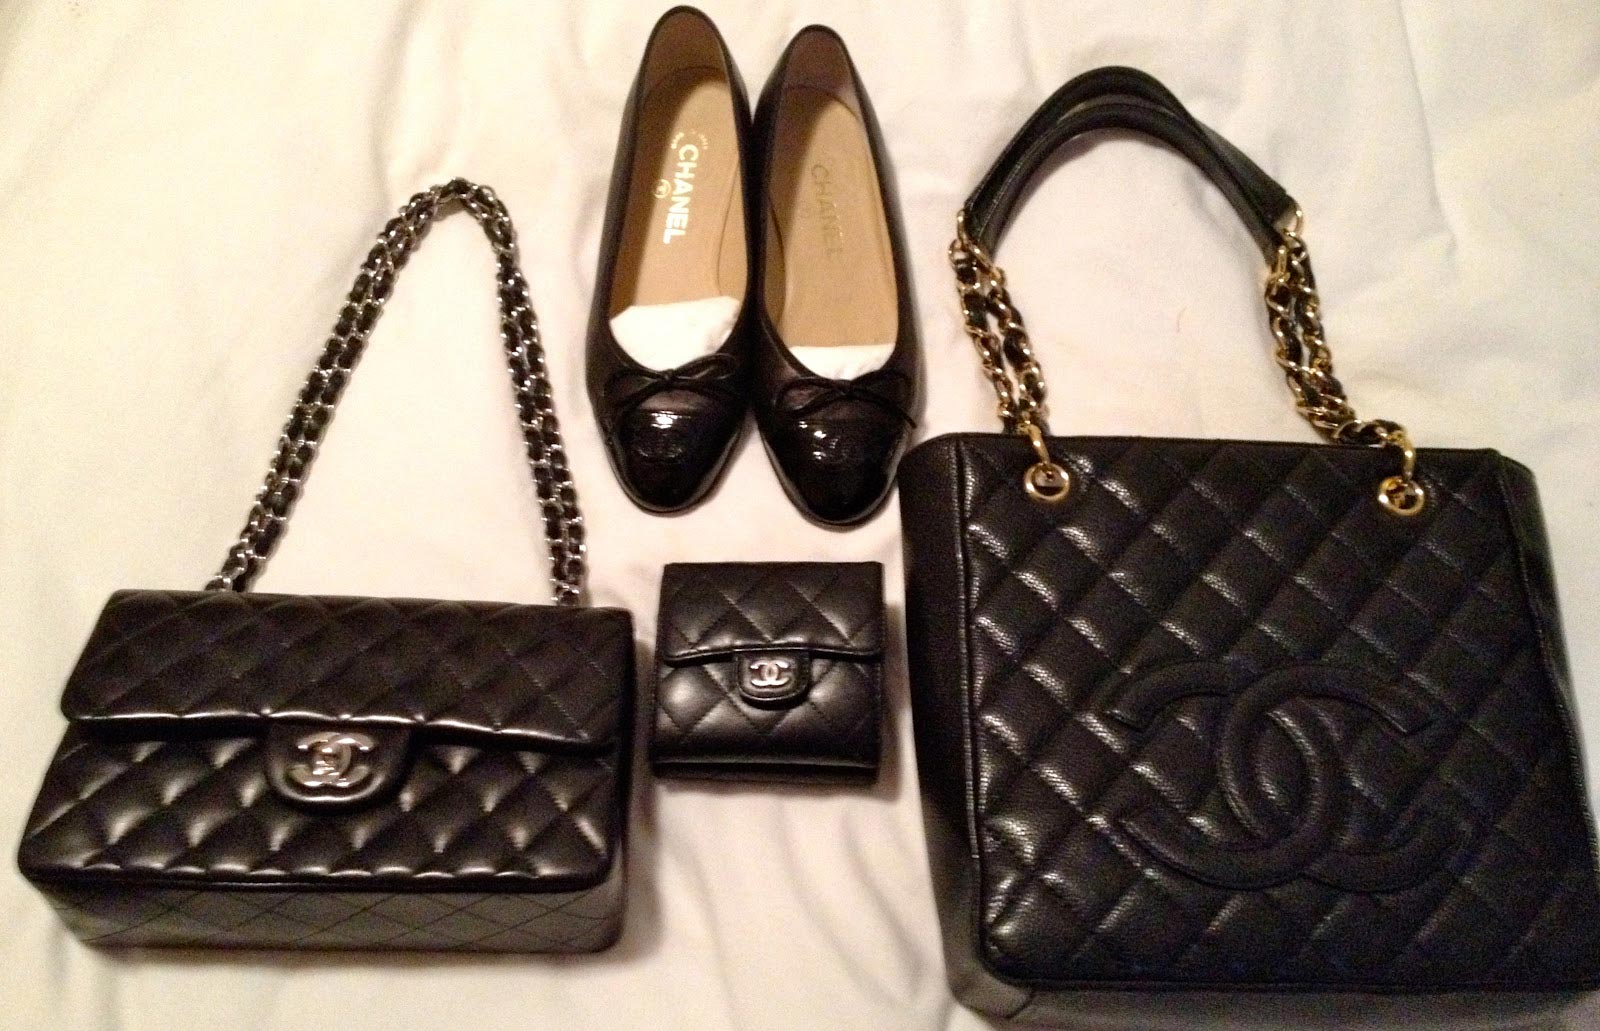 Chanel Shoes Price List